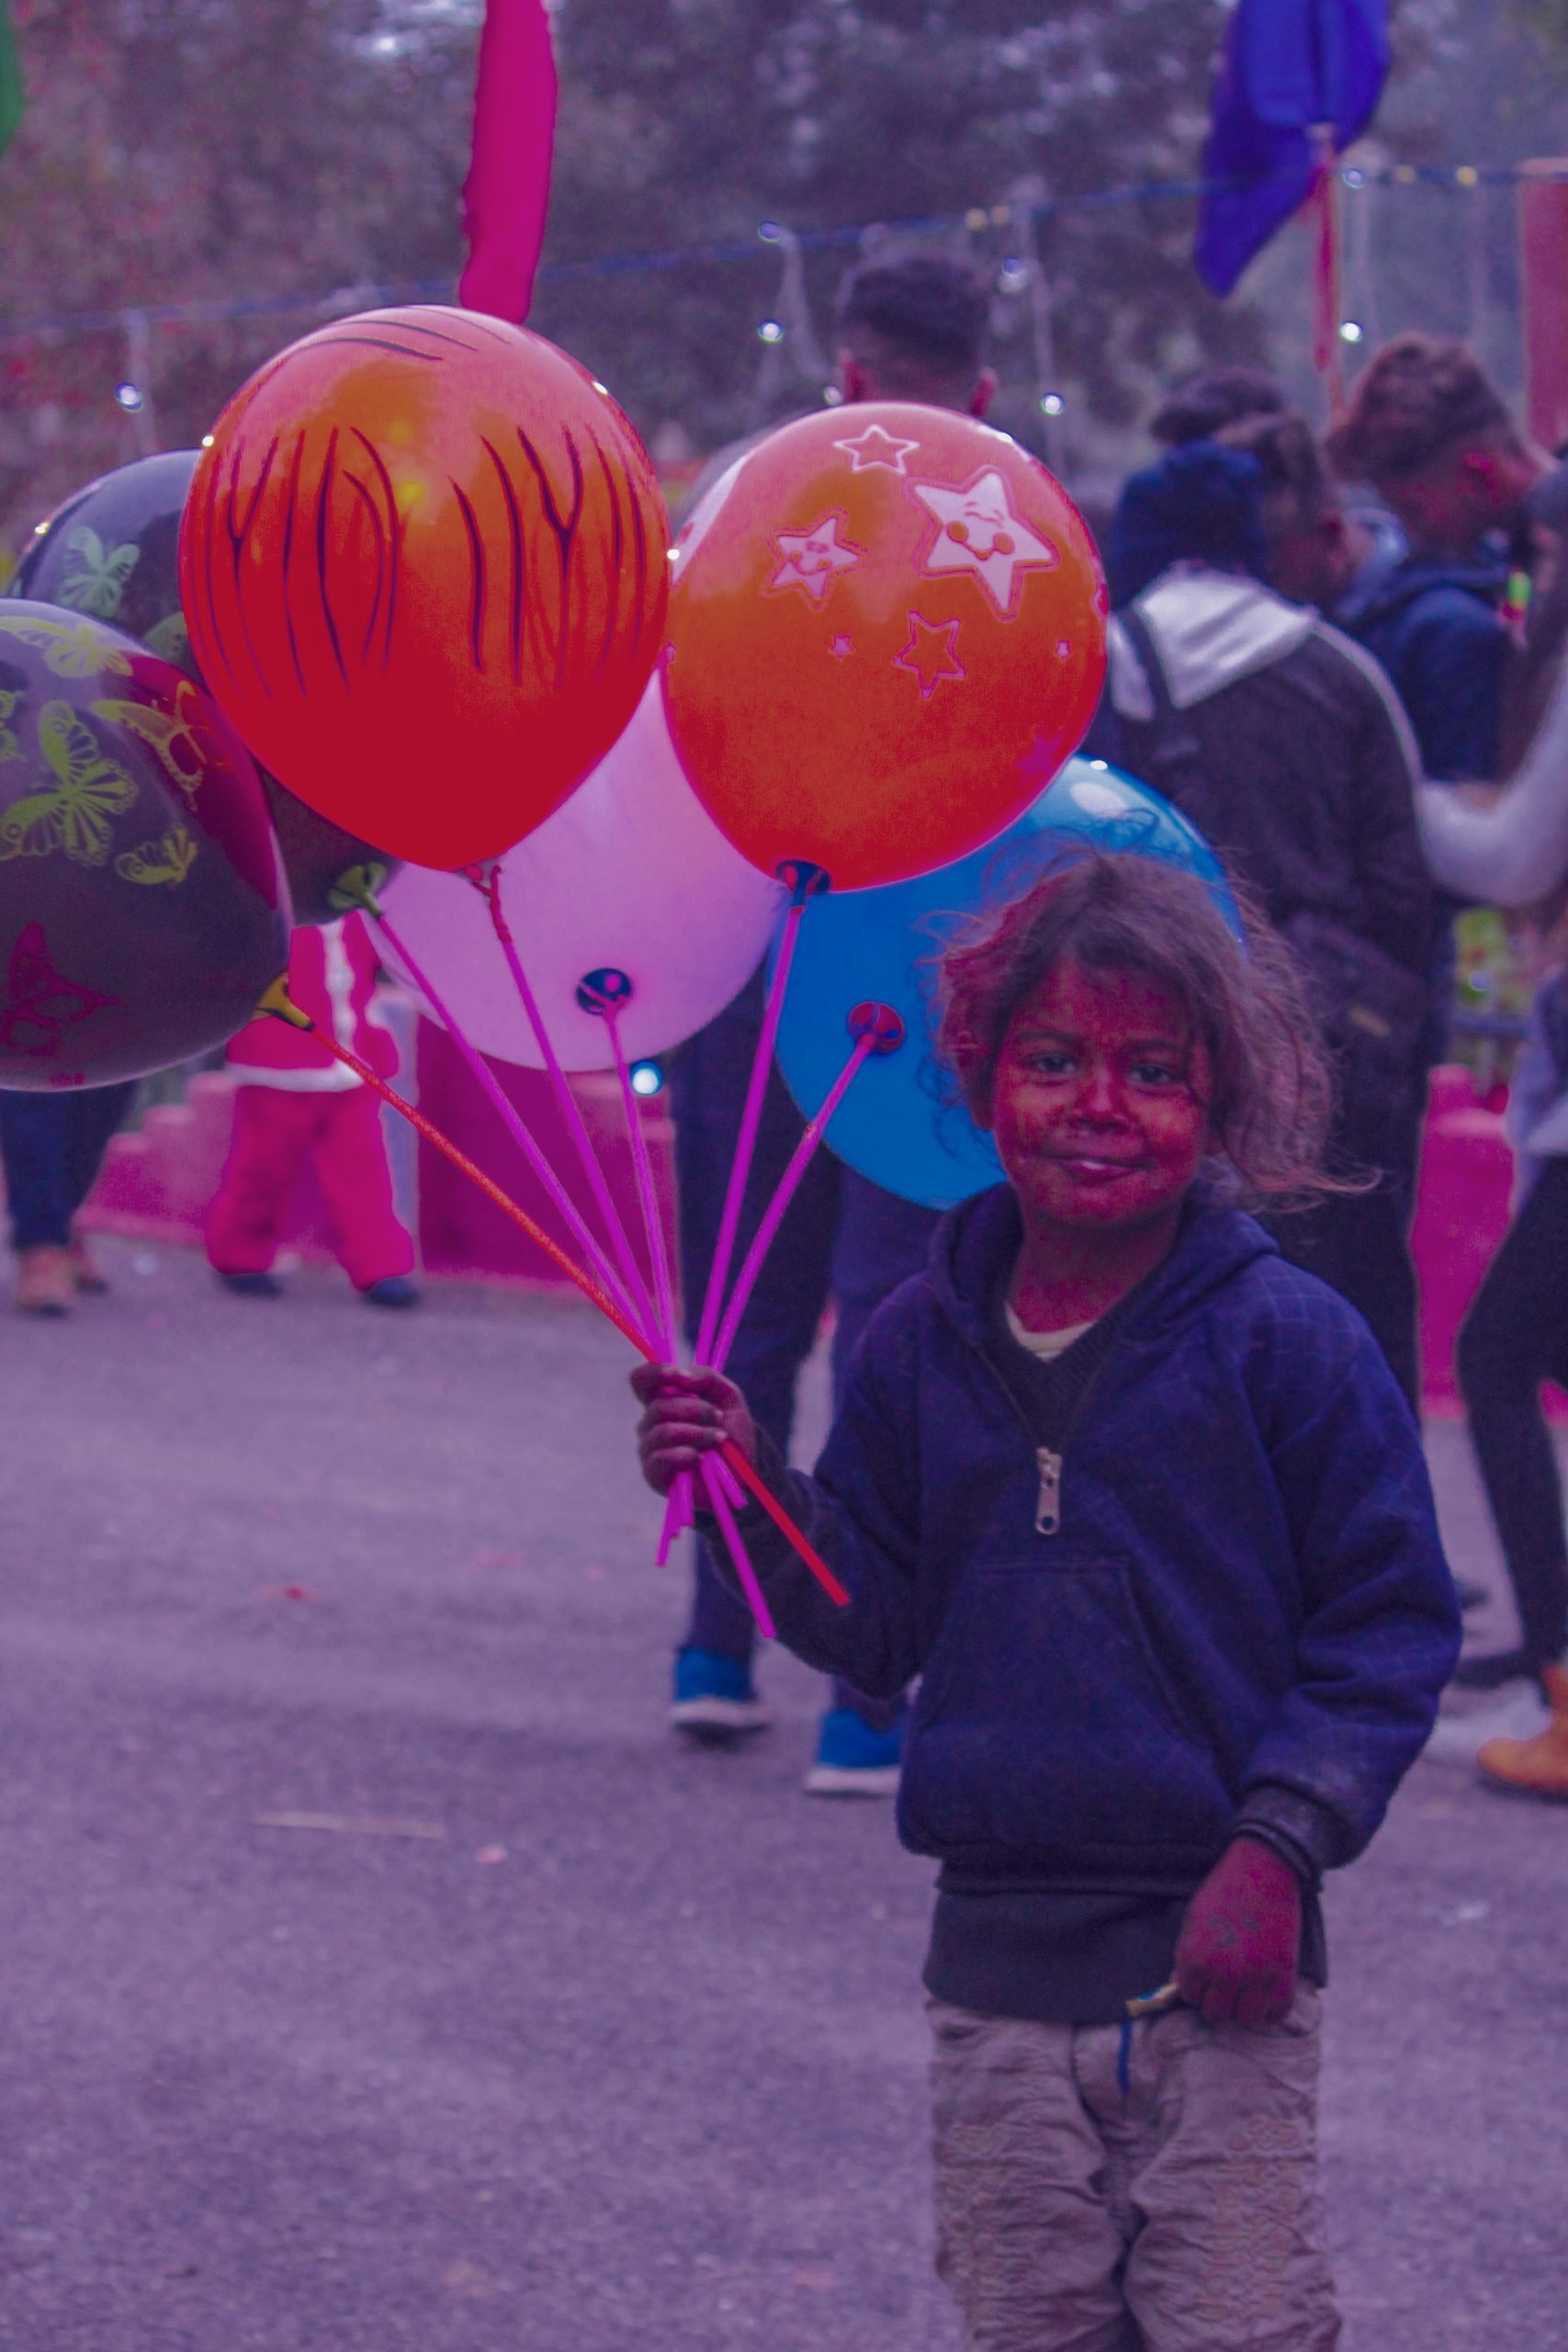 A poor child selling ballons